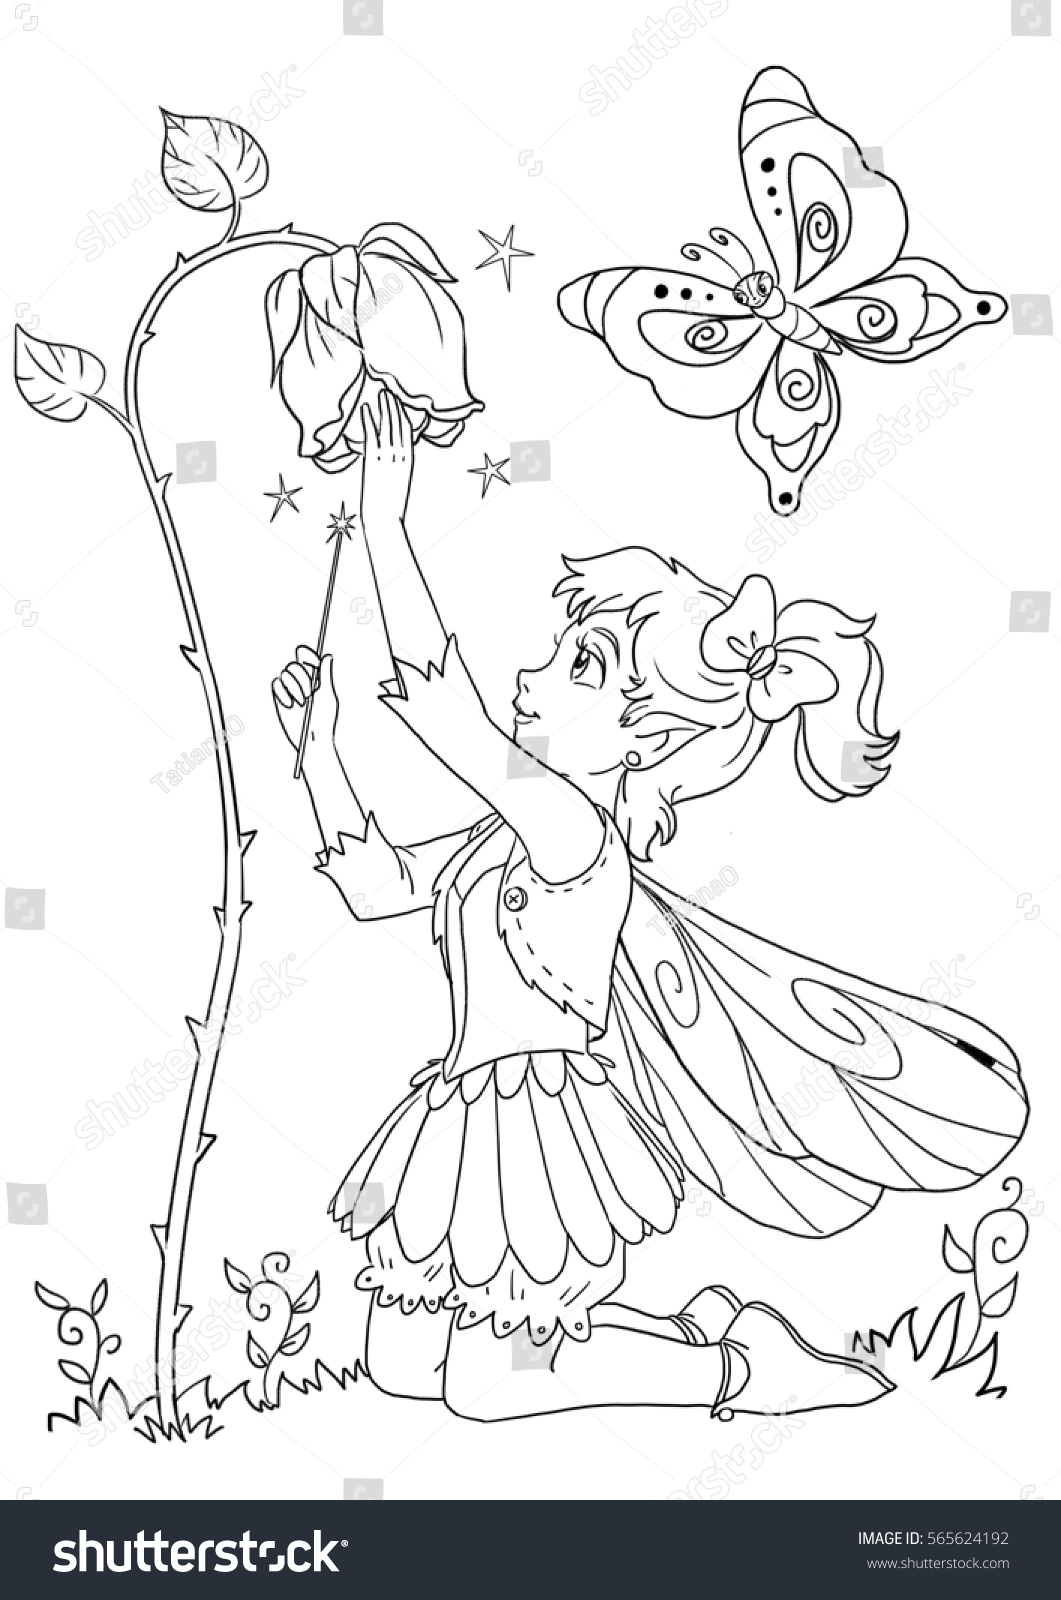 vertical coloring page cute elf stock illustration 565624192